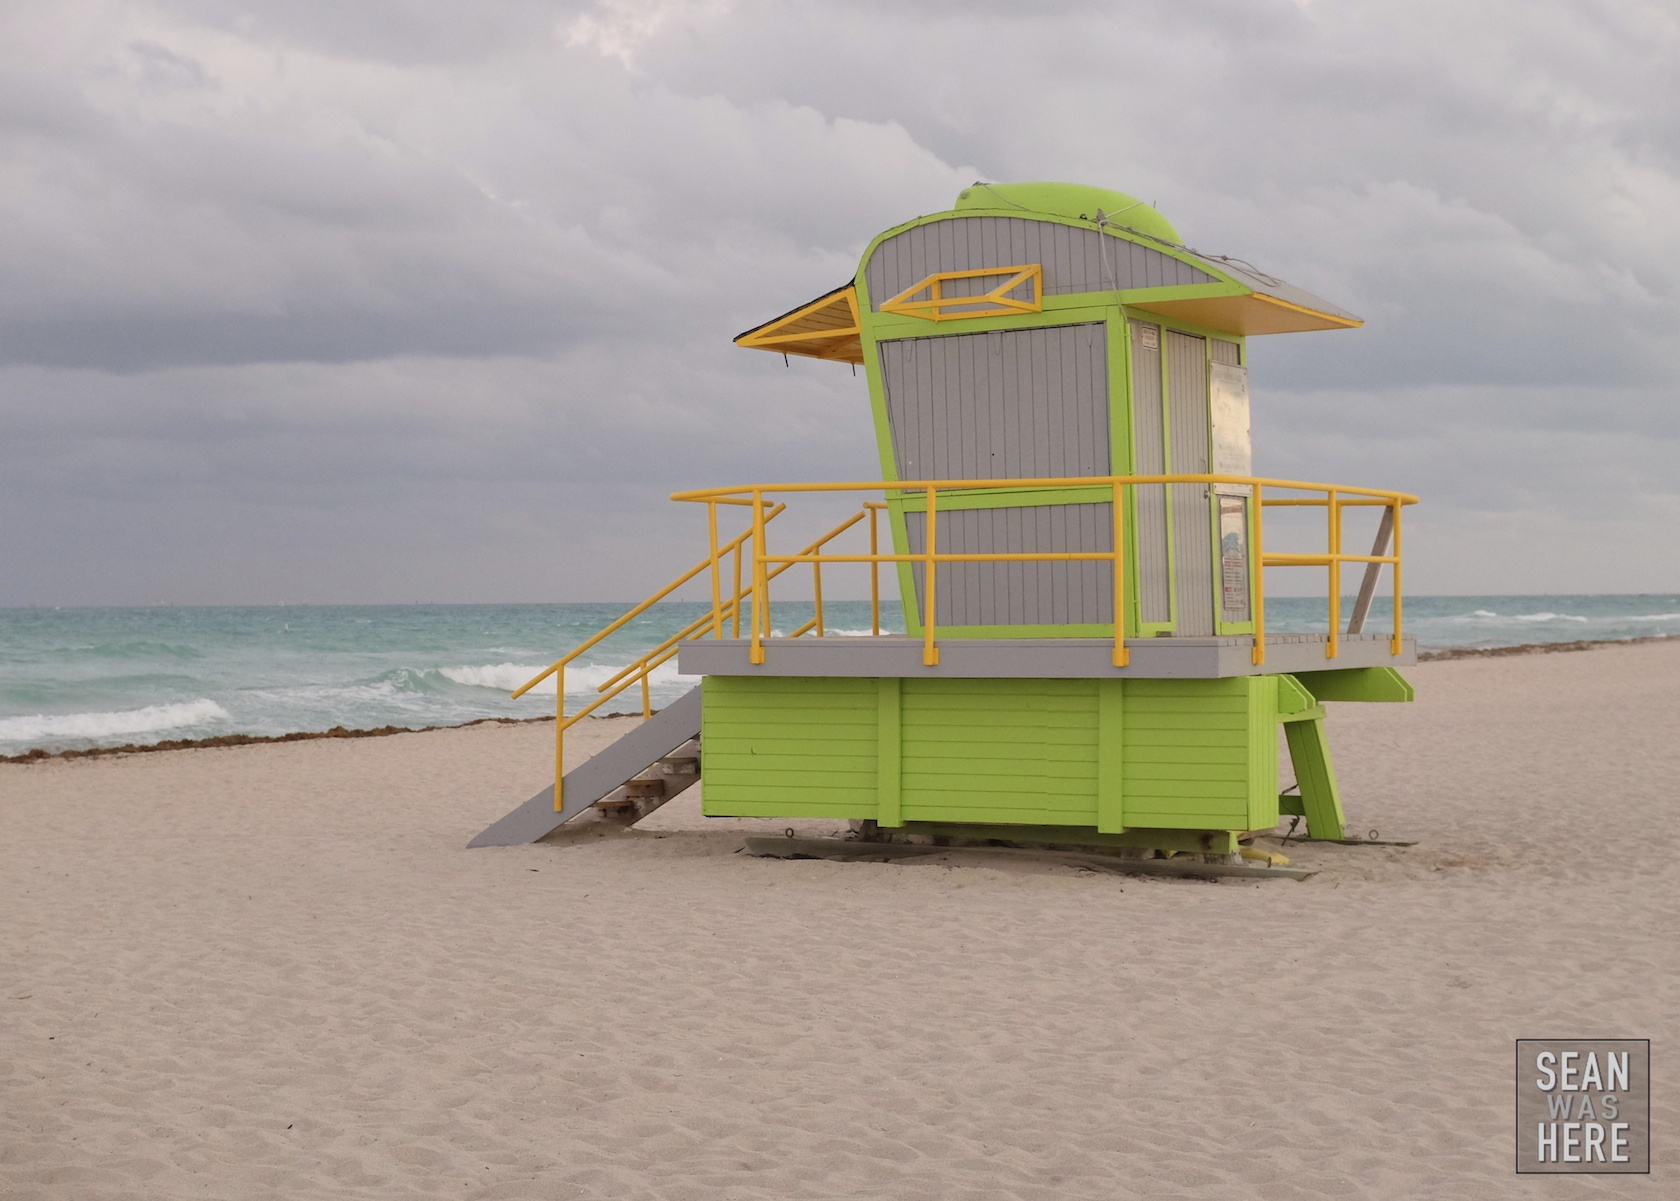 Miami Beach 12th Street Lifeguard Stand